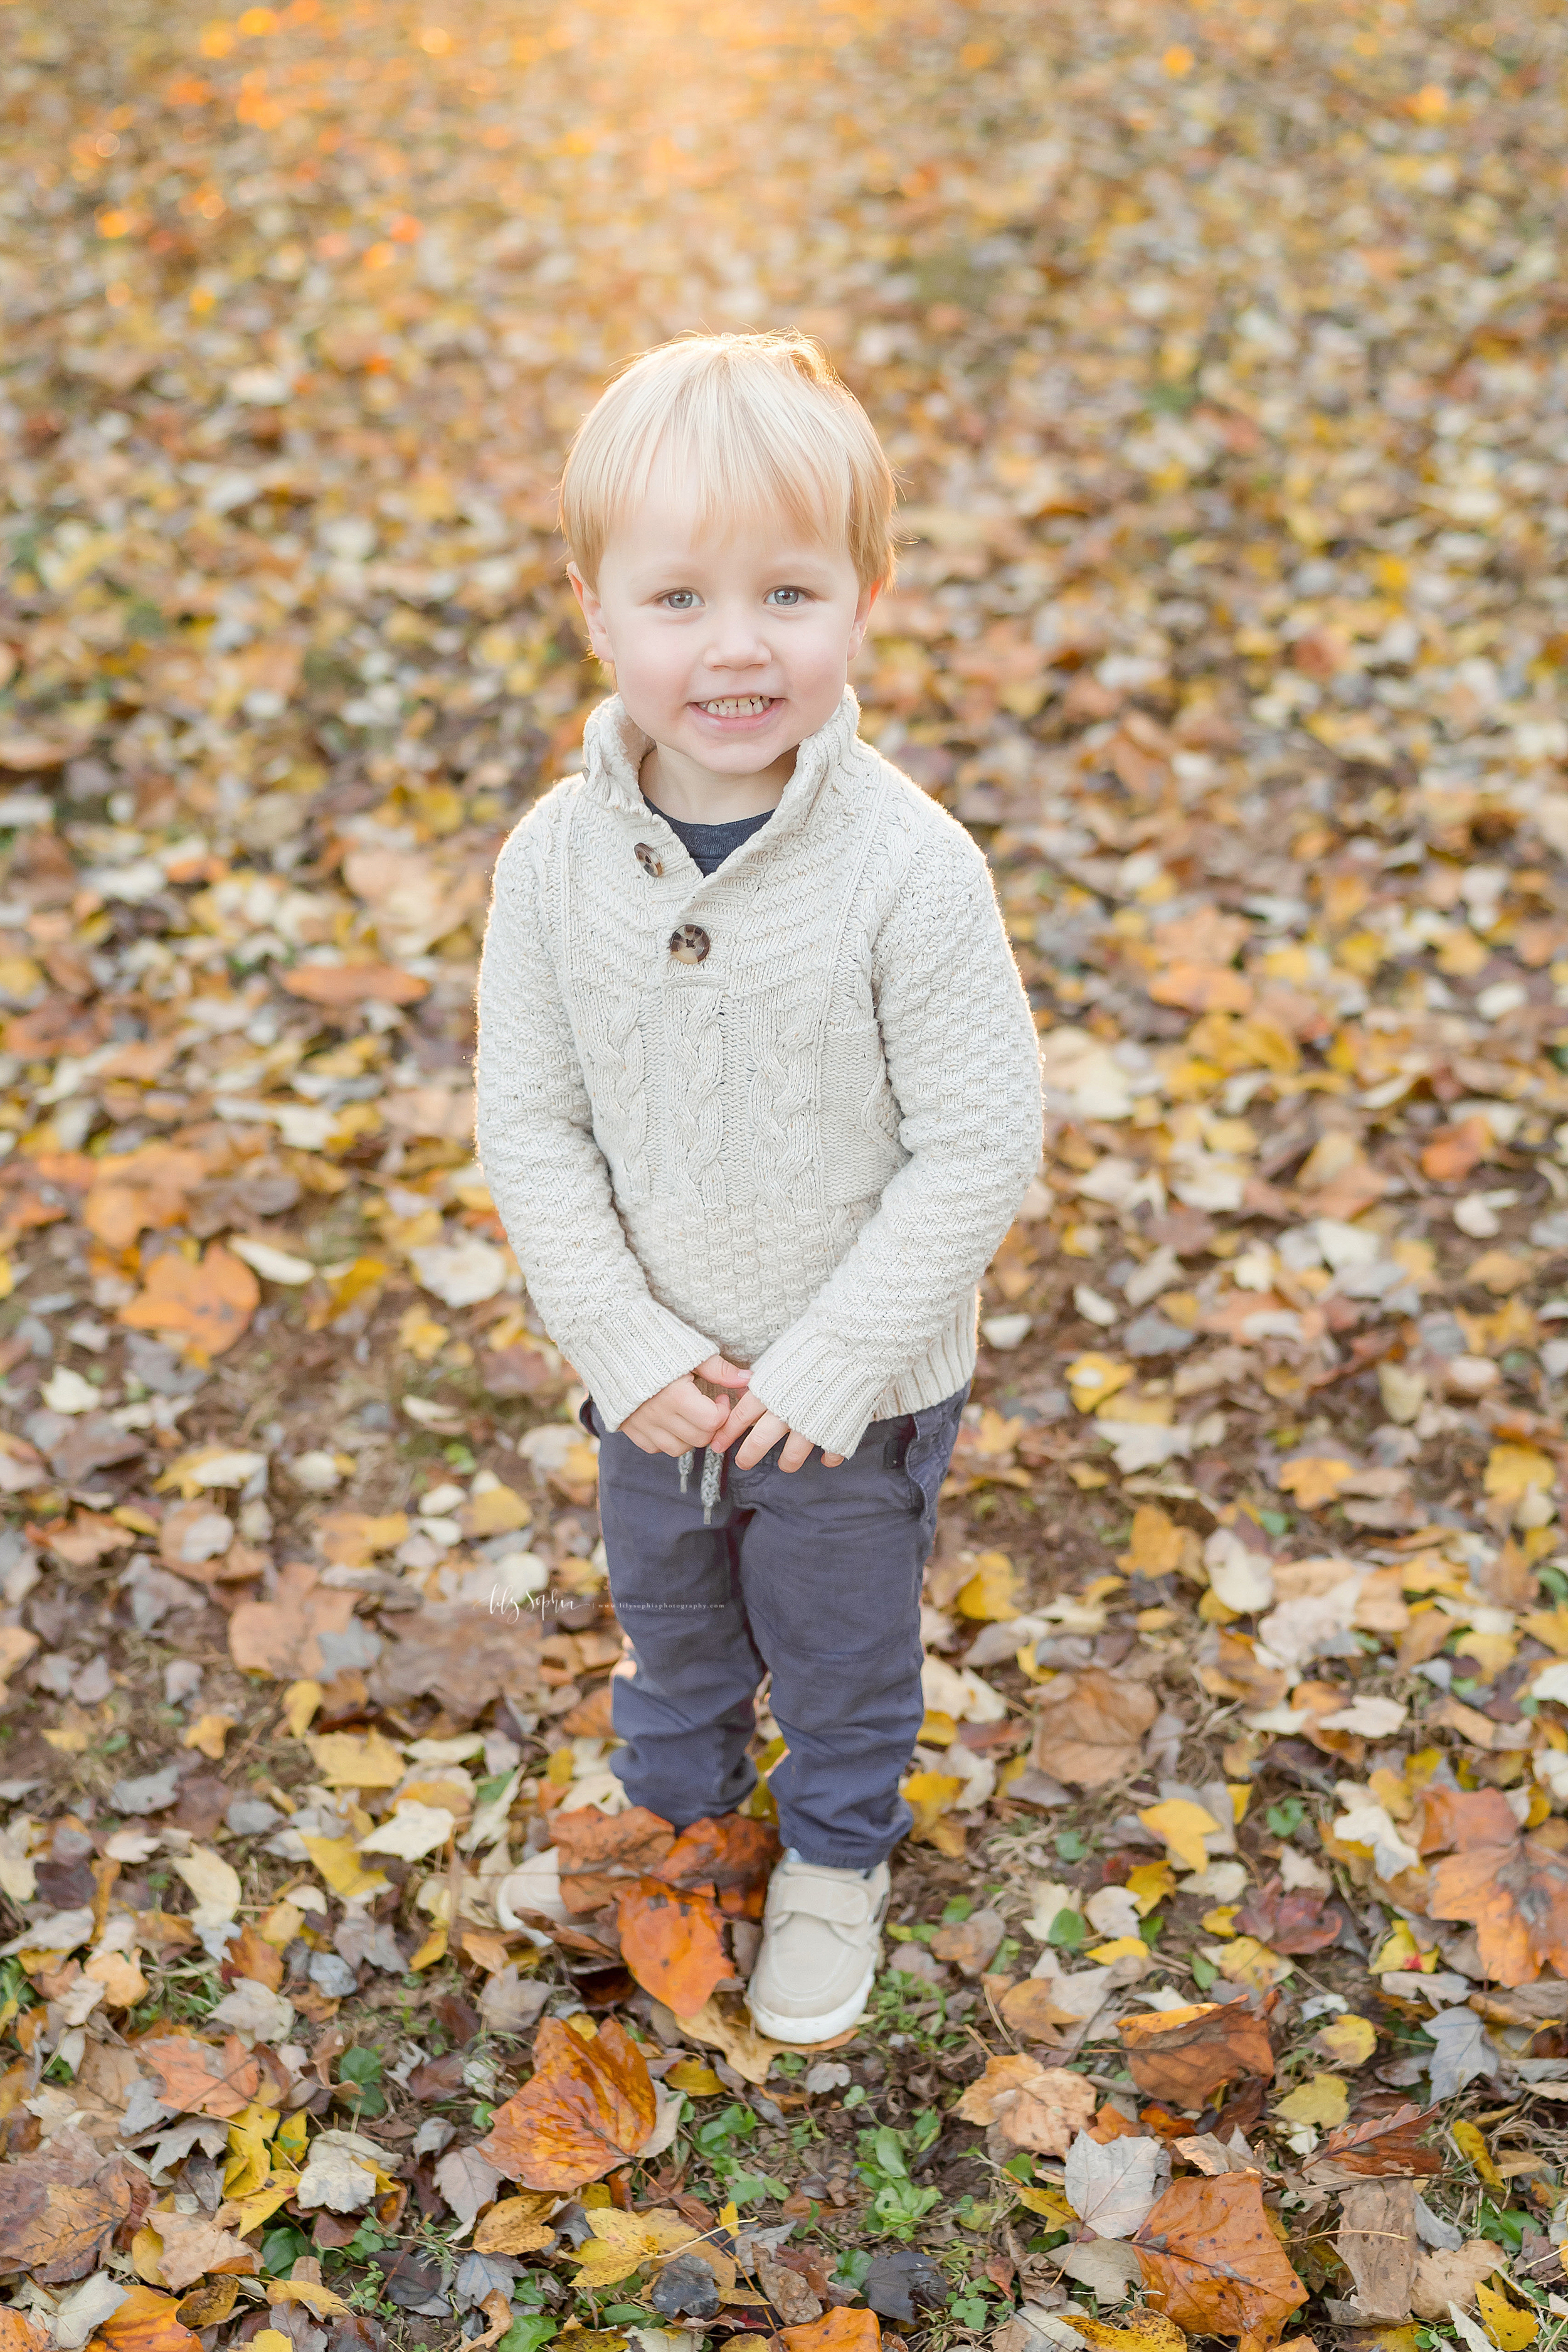 atlanta-midtown-brookhaven-decatur-lily-sophia-photography-photographer-portraits-grant-park-family-sunset-fall-outdoor-session-brothers-toddler-baby_0151.jpg